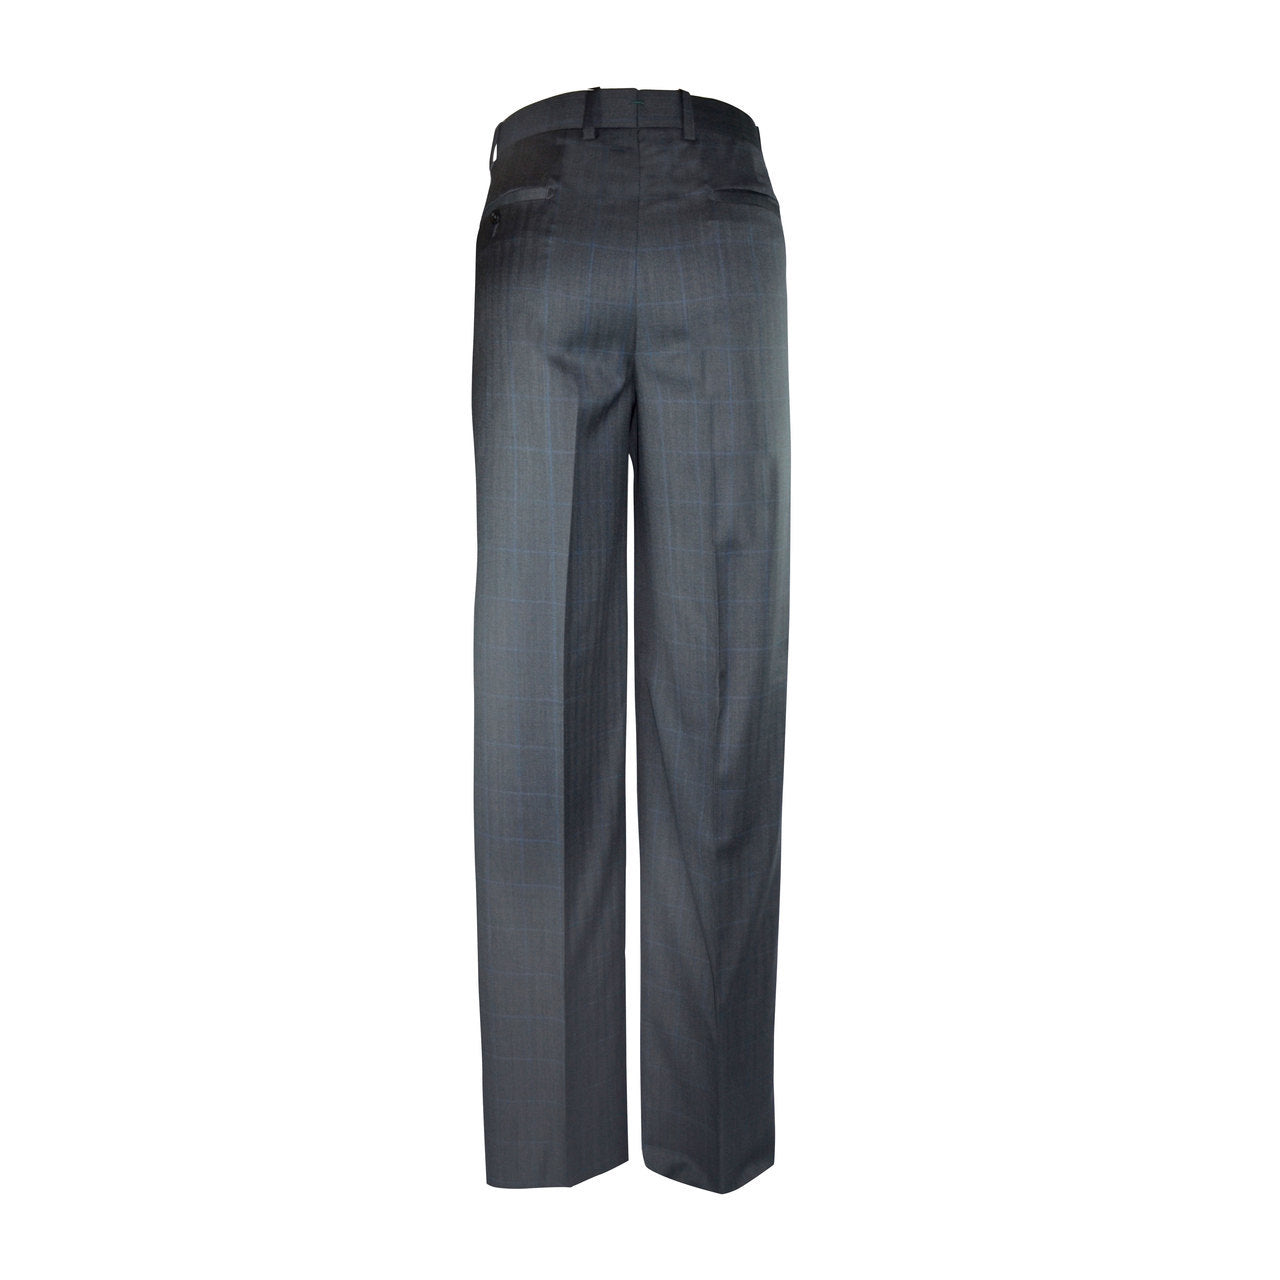 Newport Pleated Front Trouser - Charcoal Windowpane